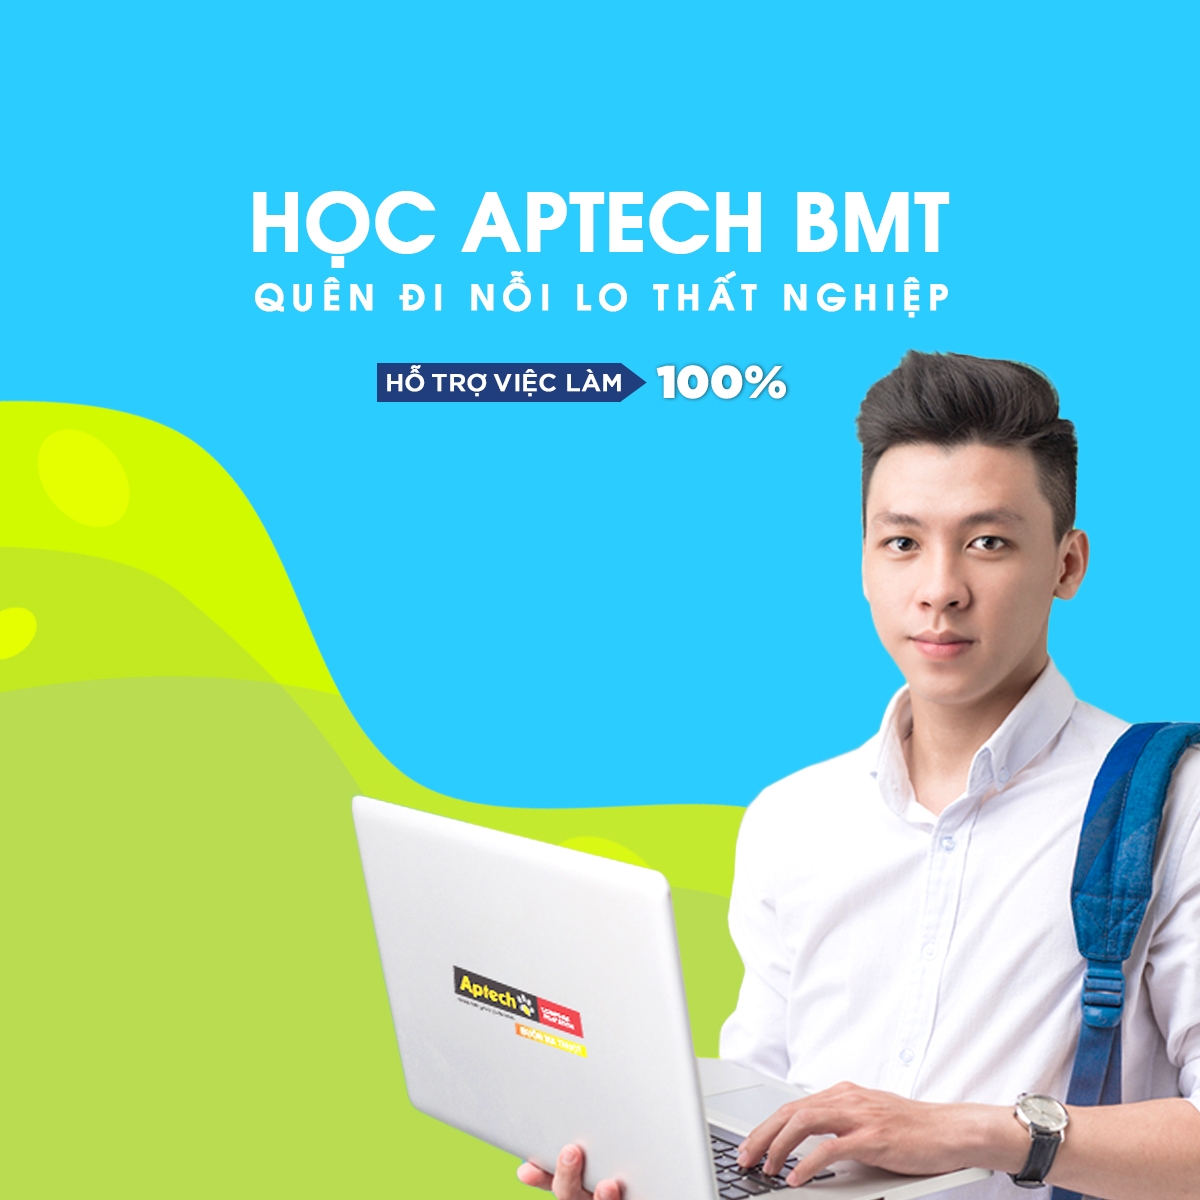 noi dung anh - aptech BMT